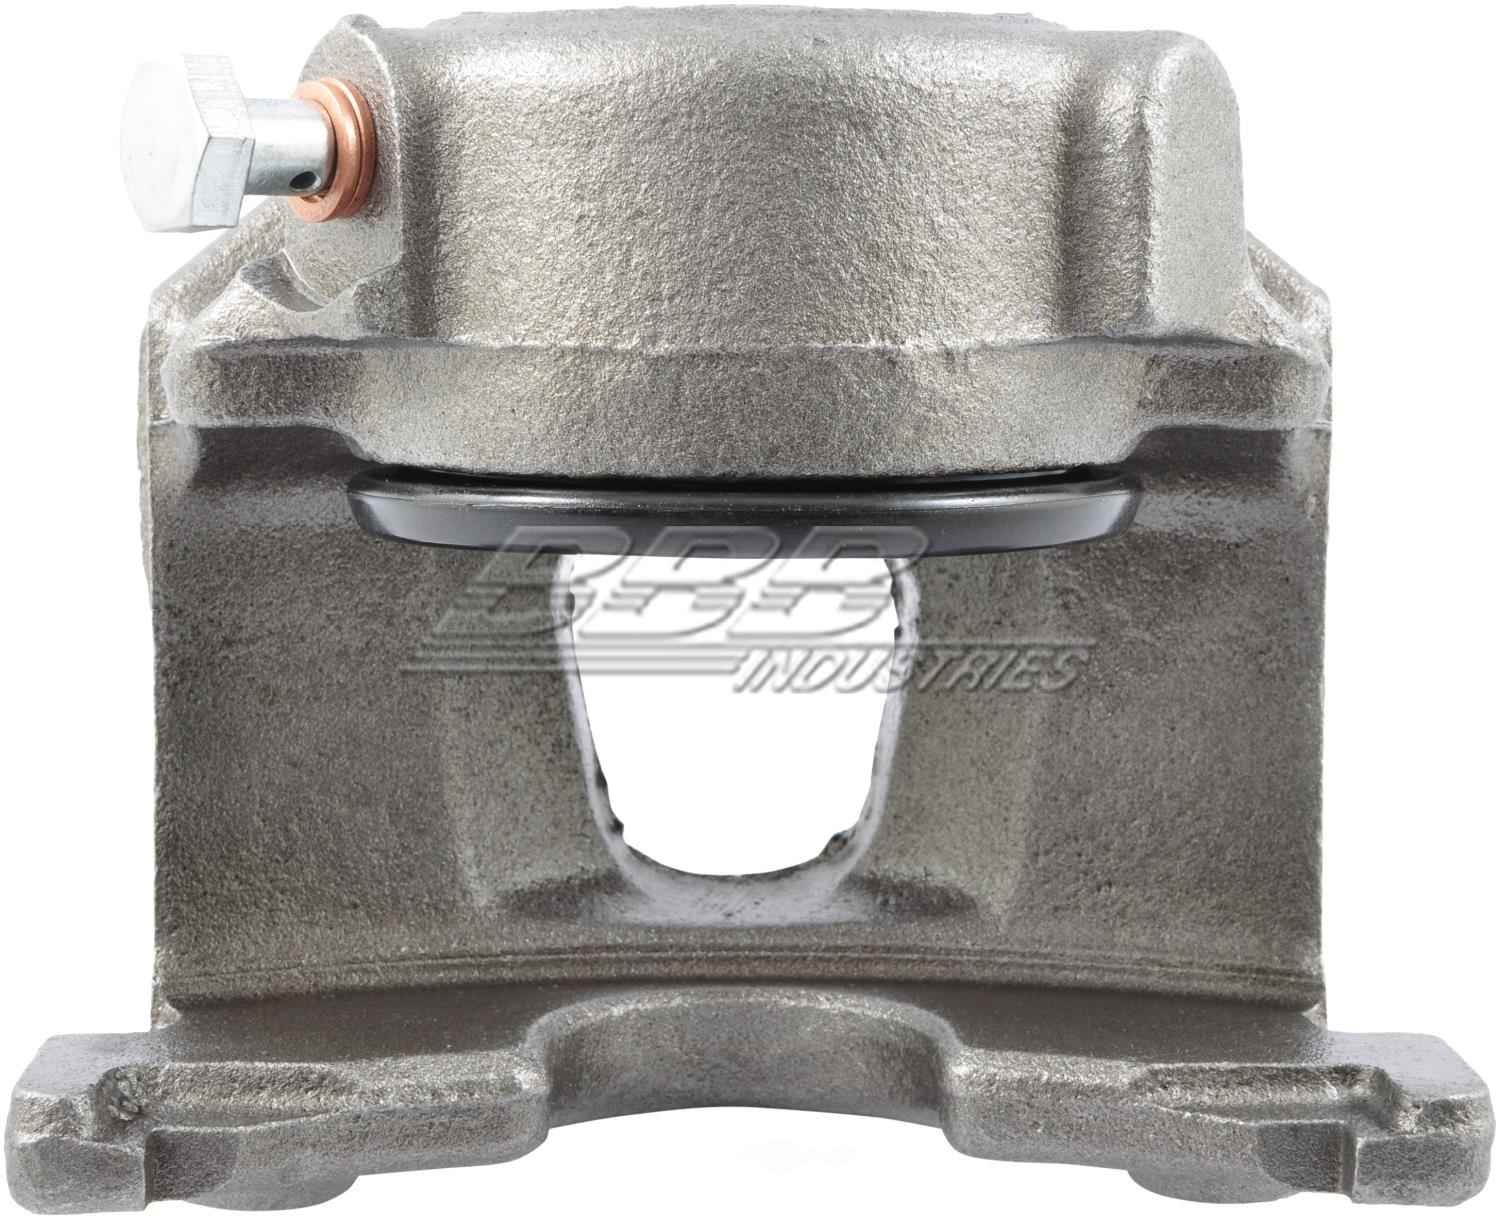 BBB INDUSTRIES - Reman Caliper W/installation Hardware - BBA 97-17002A